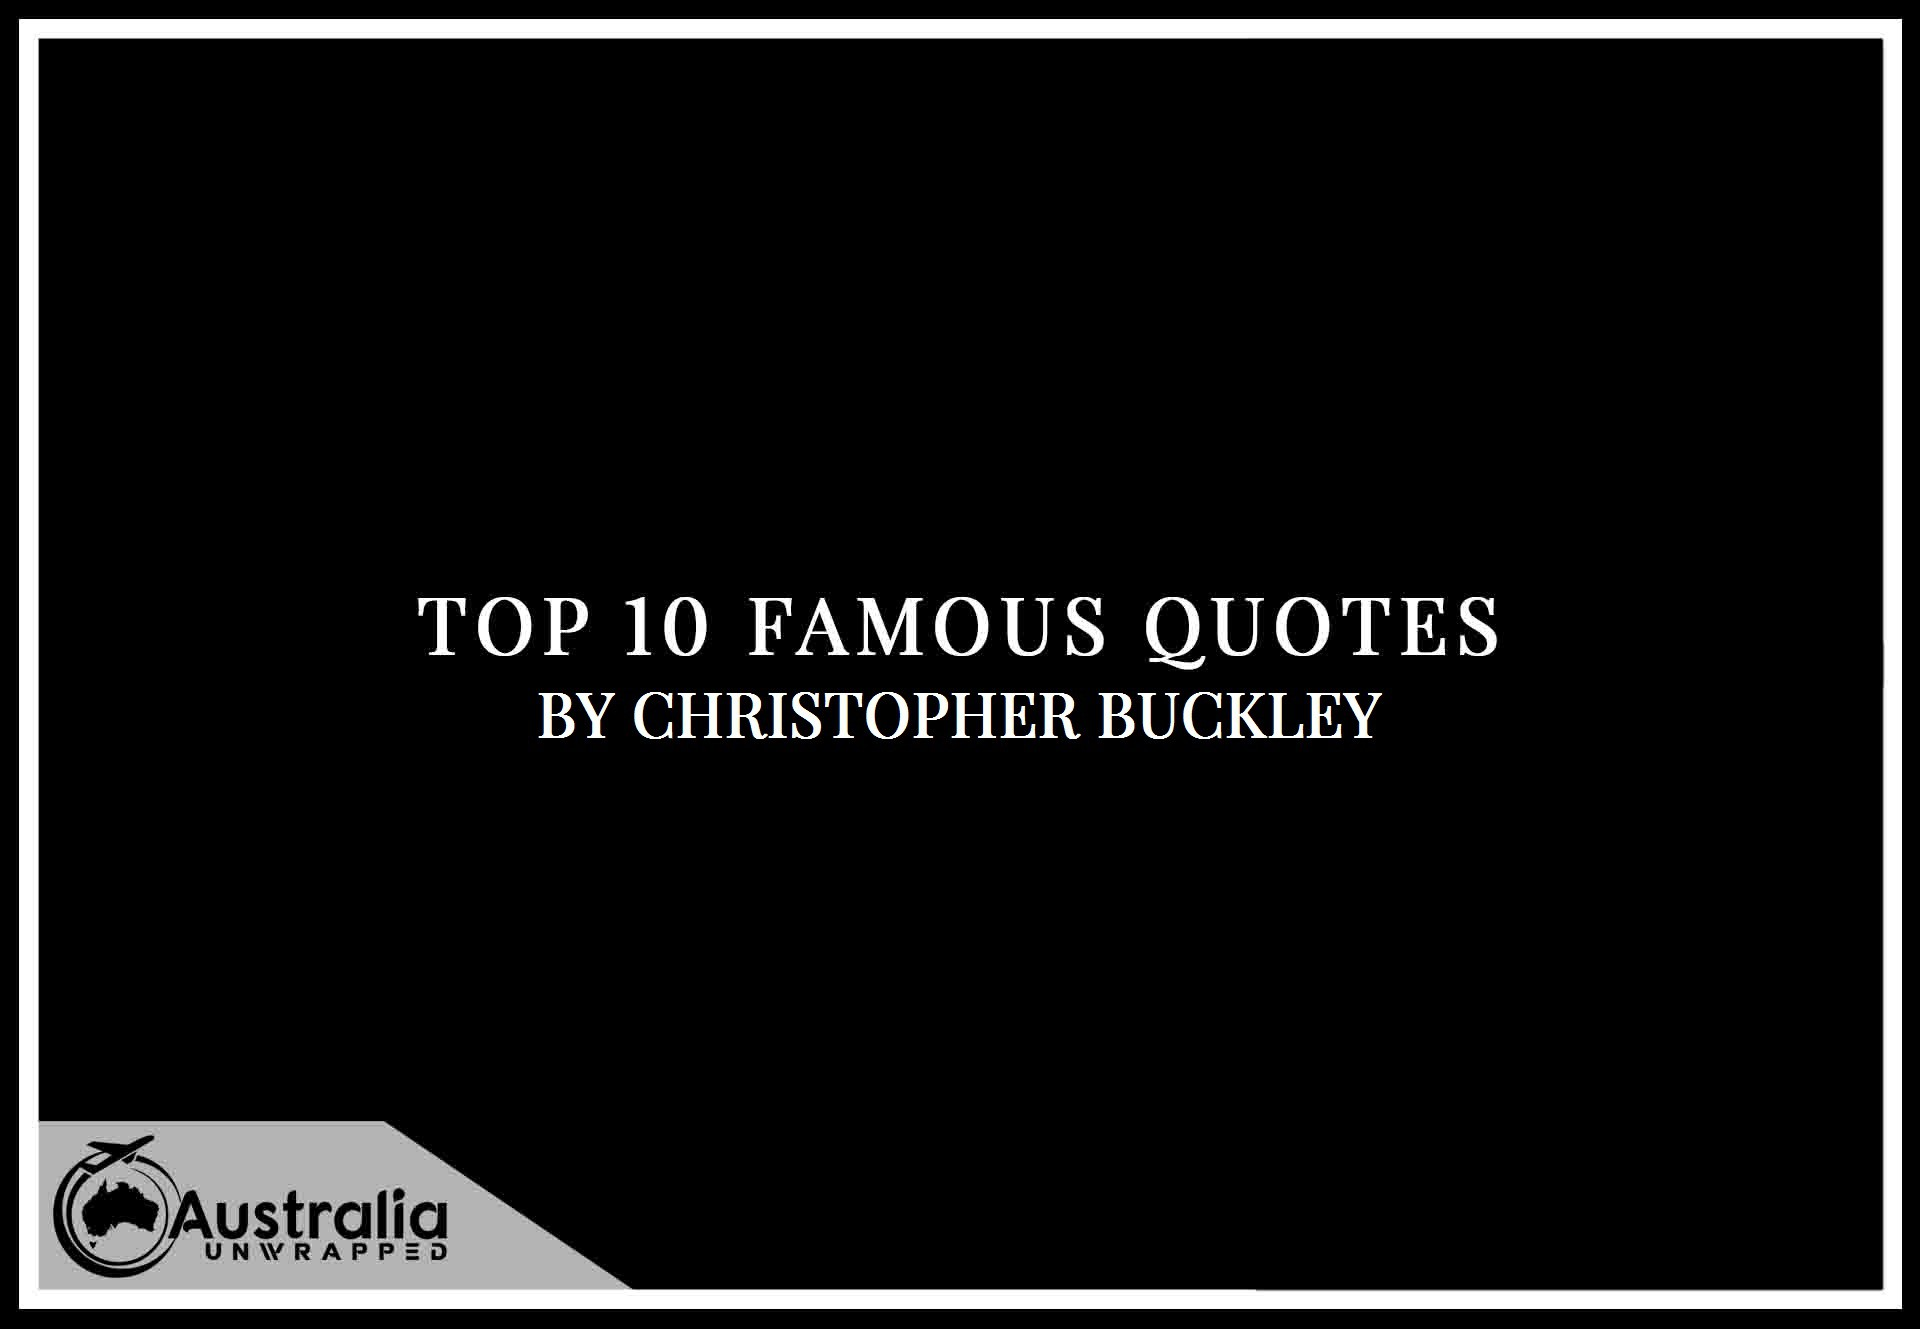 Christopher Buckley's Top 10 Popular and Famous Quotes